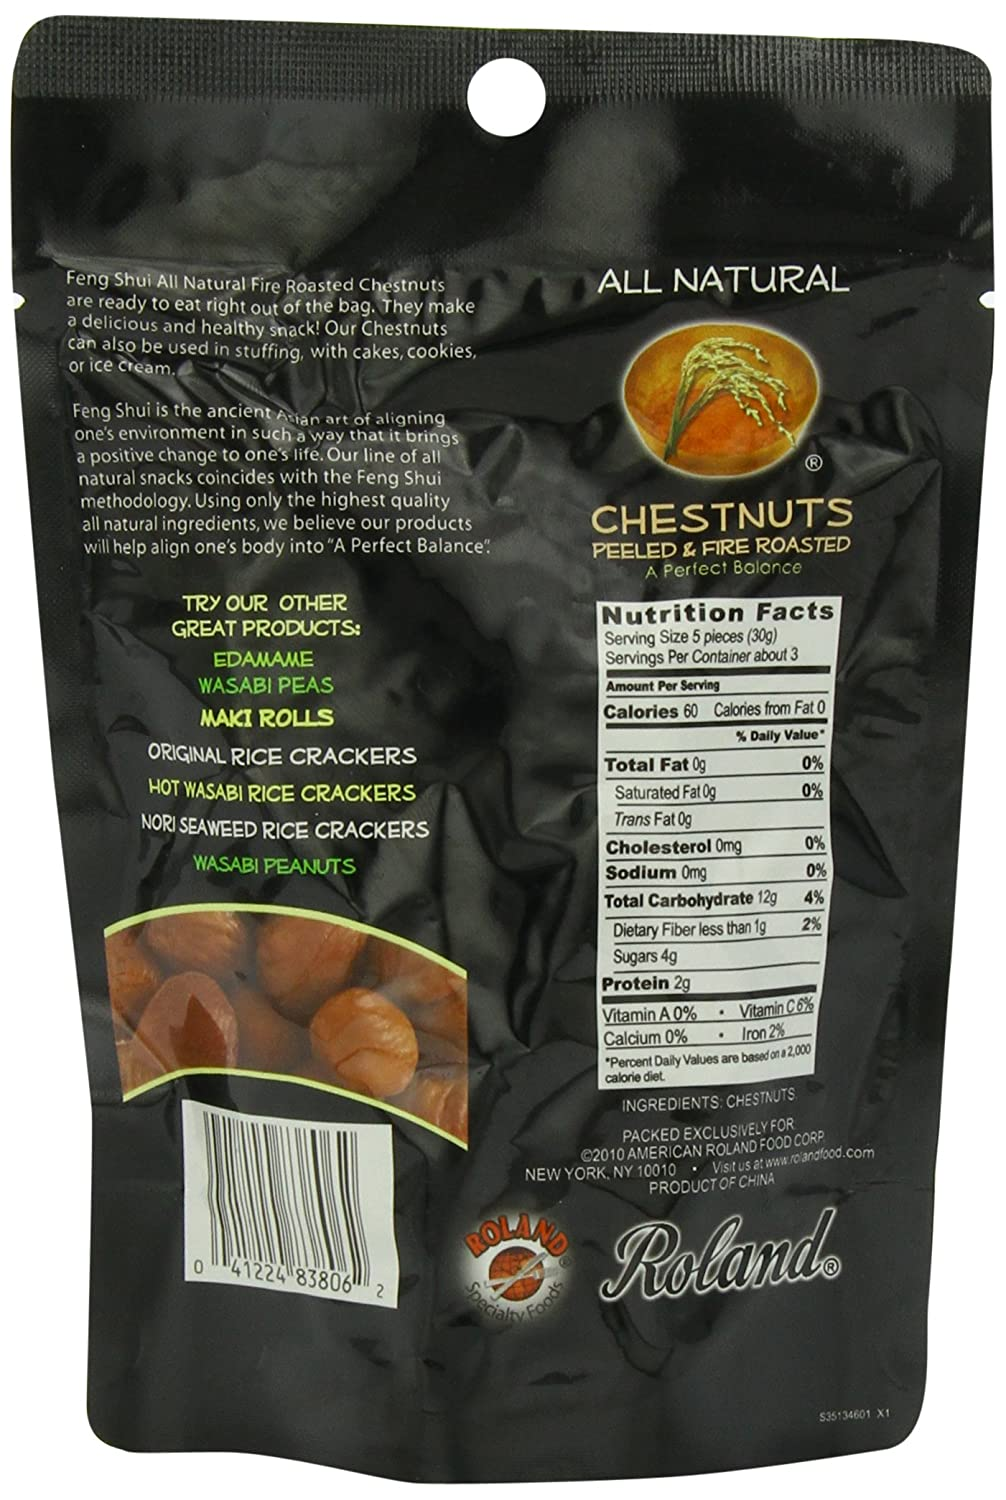 Amazon.com : Feng Shui Chestnuts, Fire Roasted, 3.5 Ounce : Edible ...